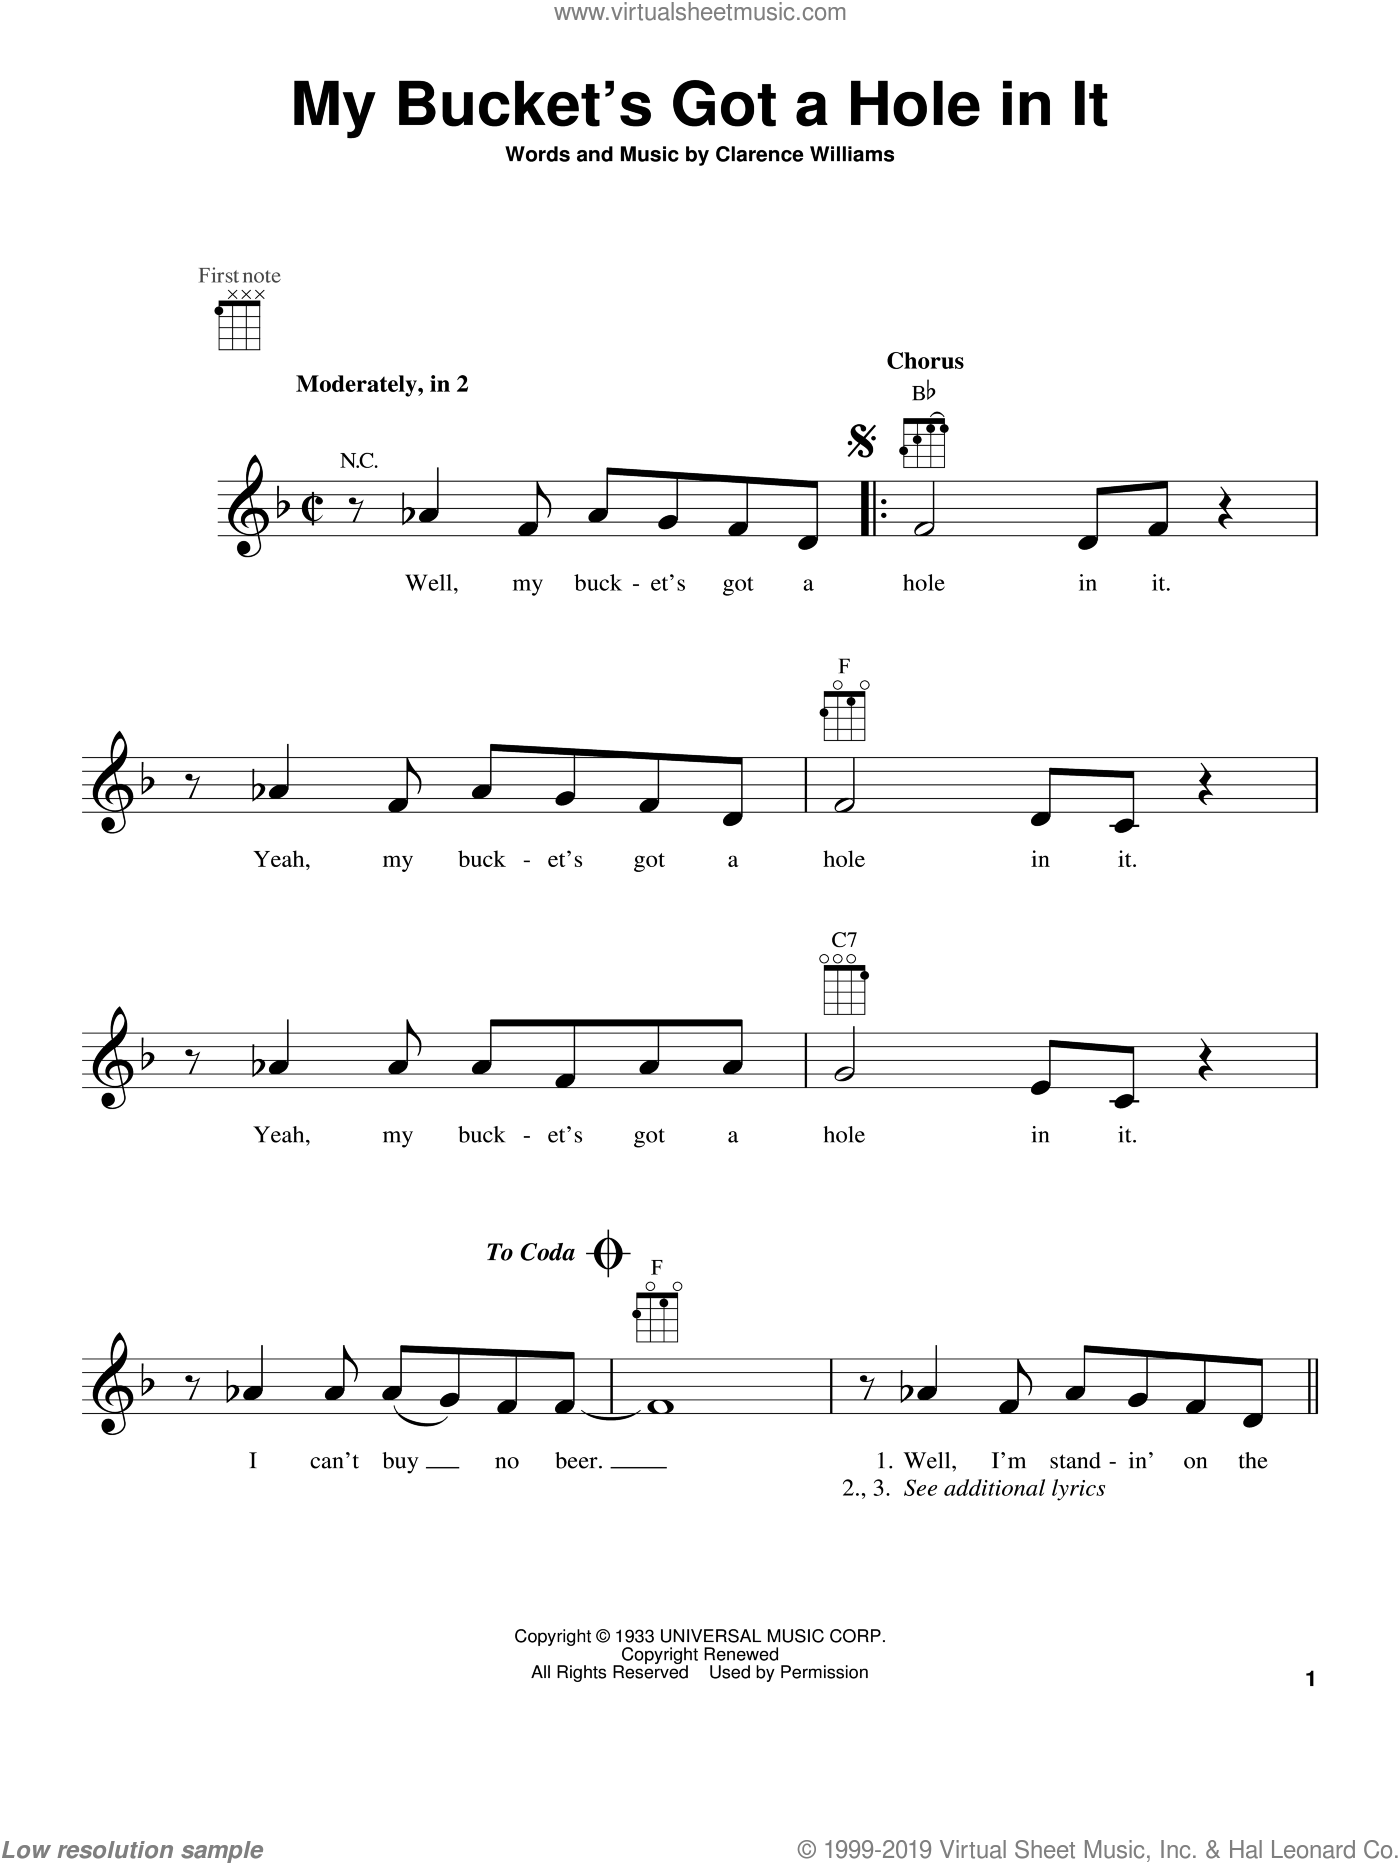 My Bucket's Got A Hole In It sheet music for ukulele by Clarence Williams